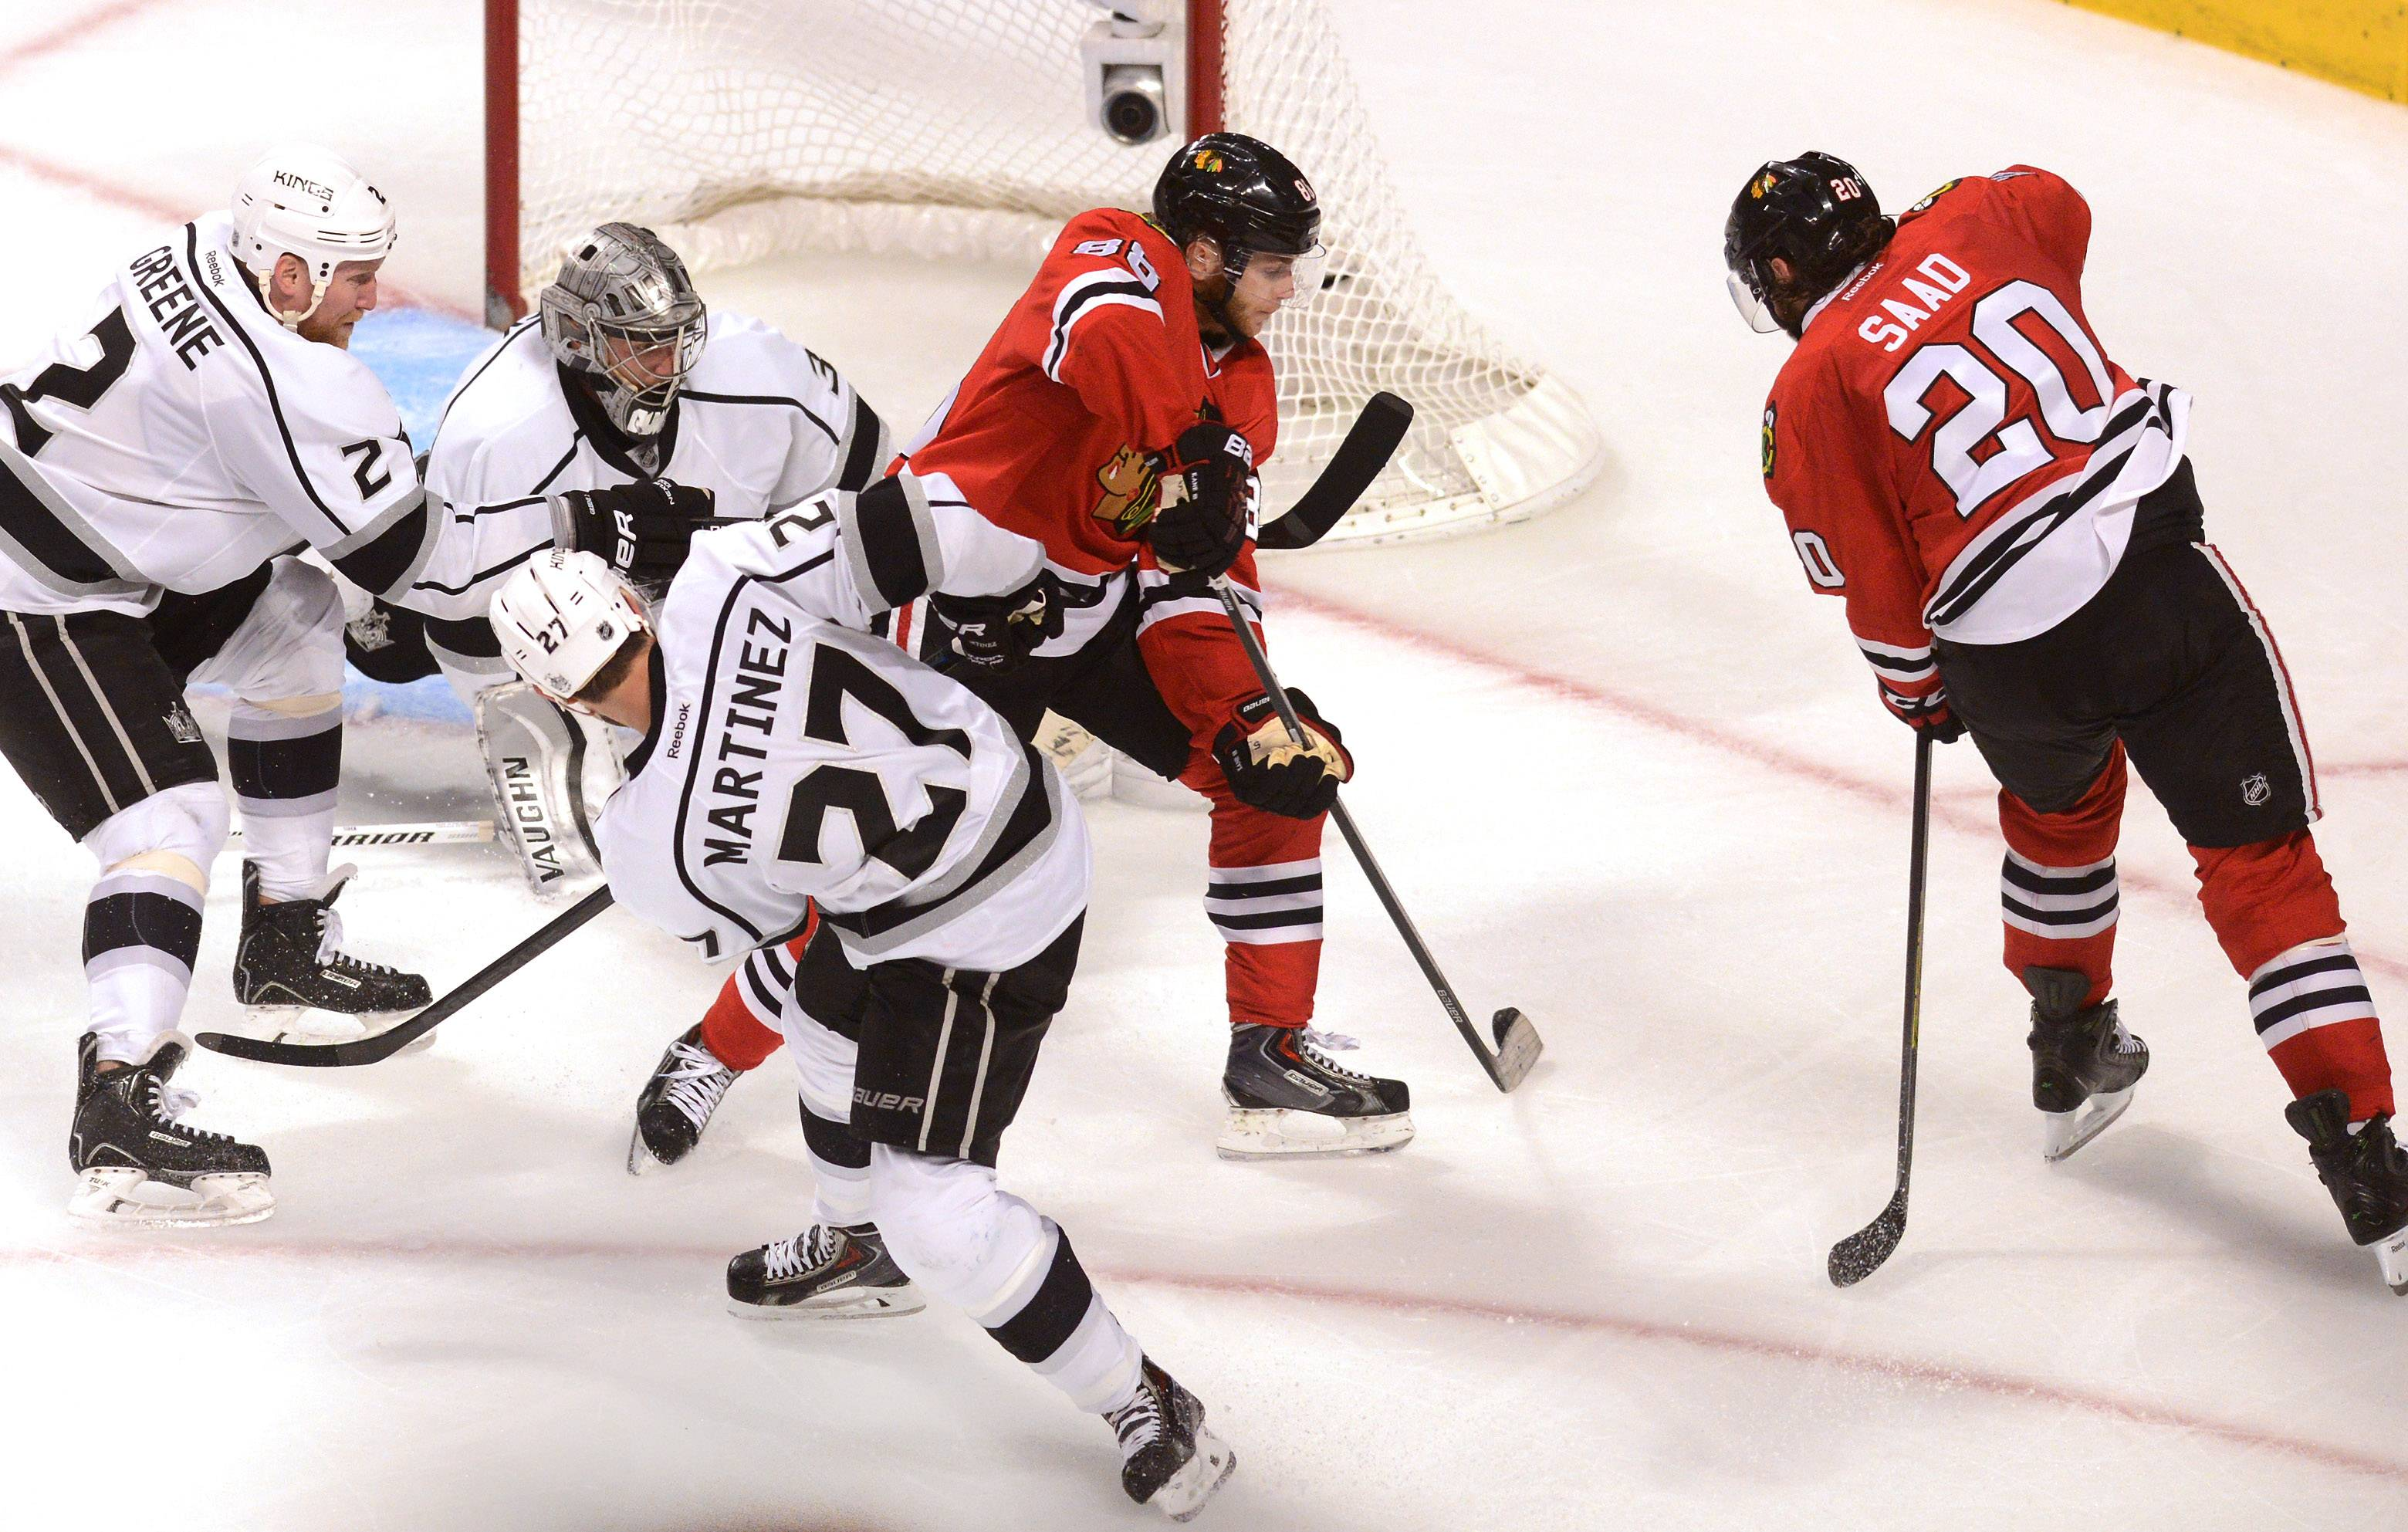 Chicago Blackhawks right wing Patrick Kane and Chicago Blackhawks left wing Brandon Saad try to score in the first OT.